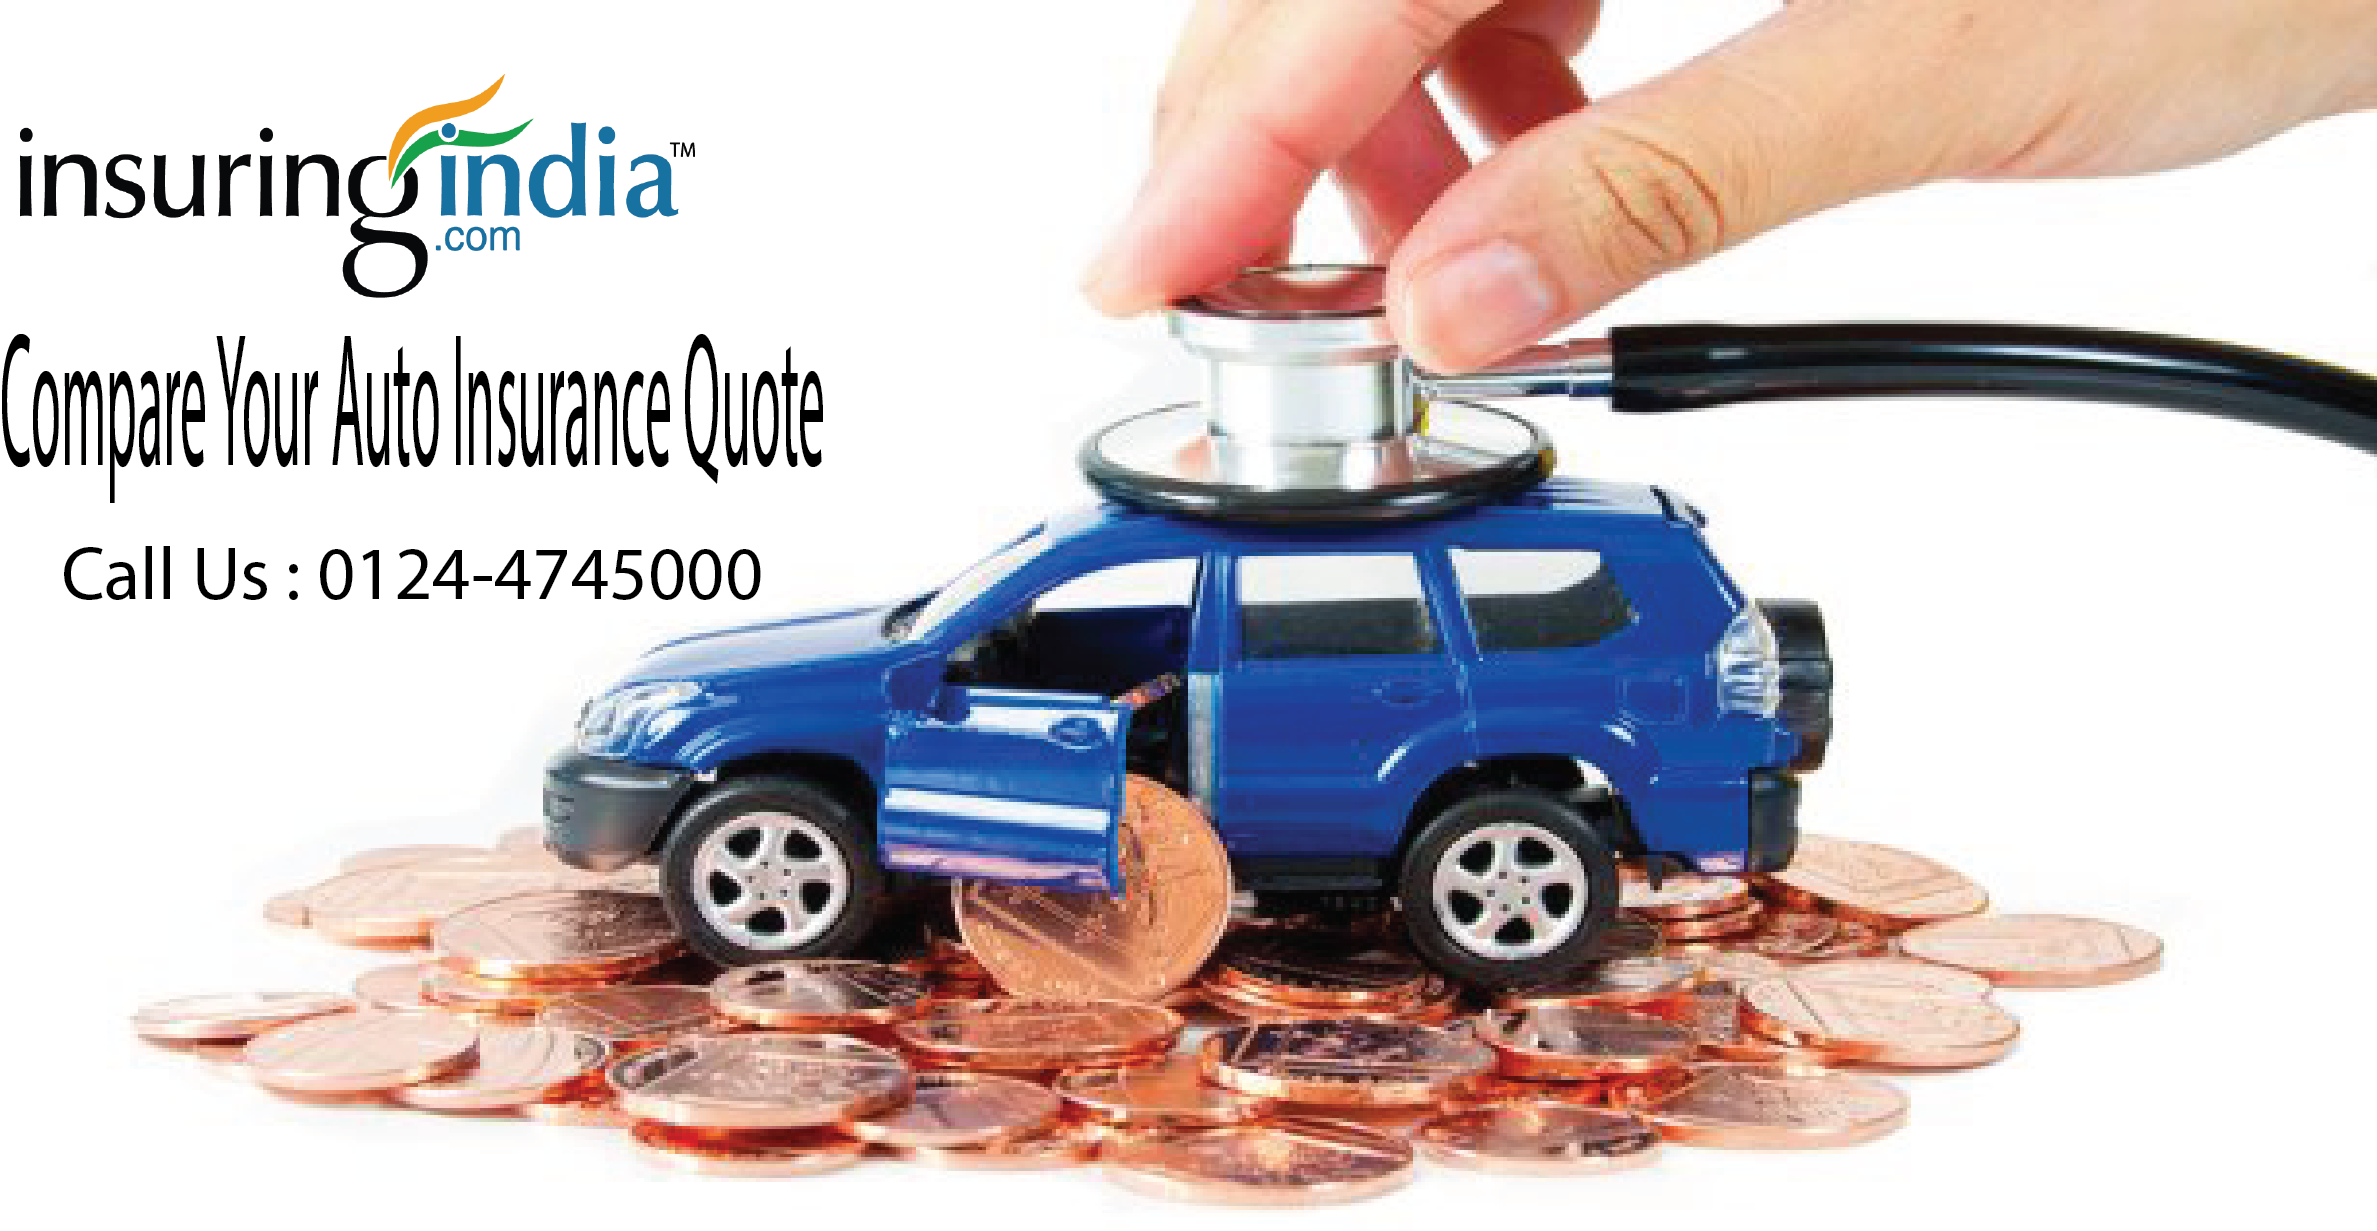 General Insurance Quote Follow This Linkhttpwww.insuringindiageneralinsurance